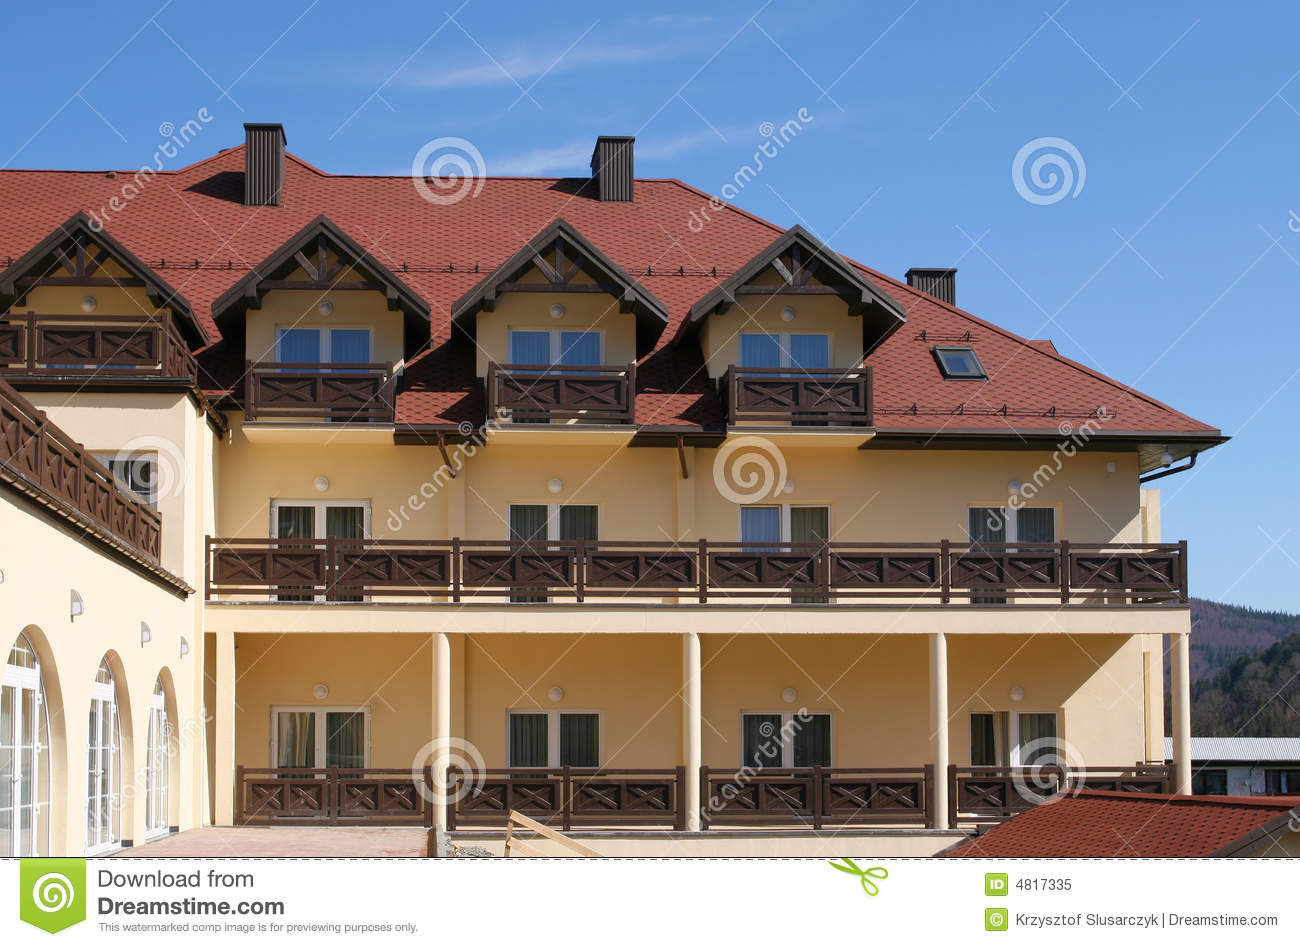 Hotel balconies royalty free stock photo image 4817335 for Hotels with balconies